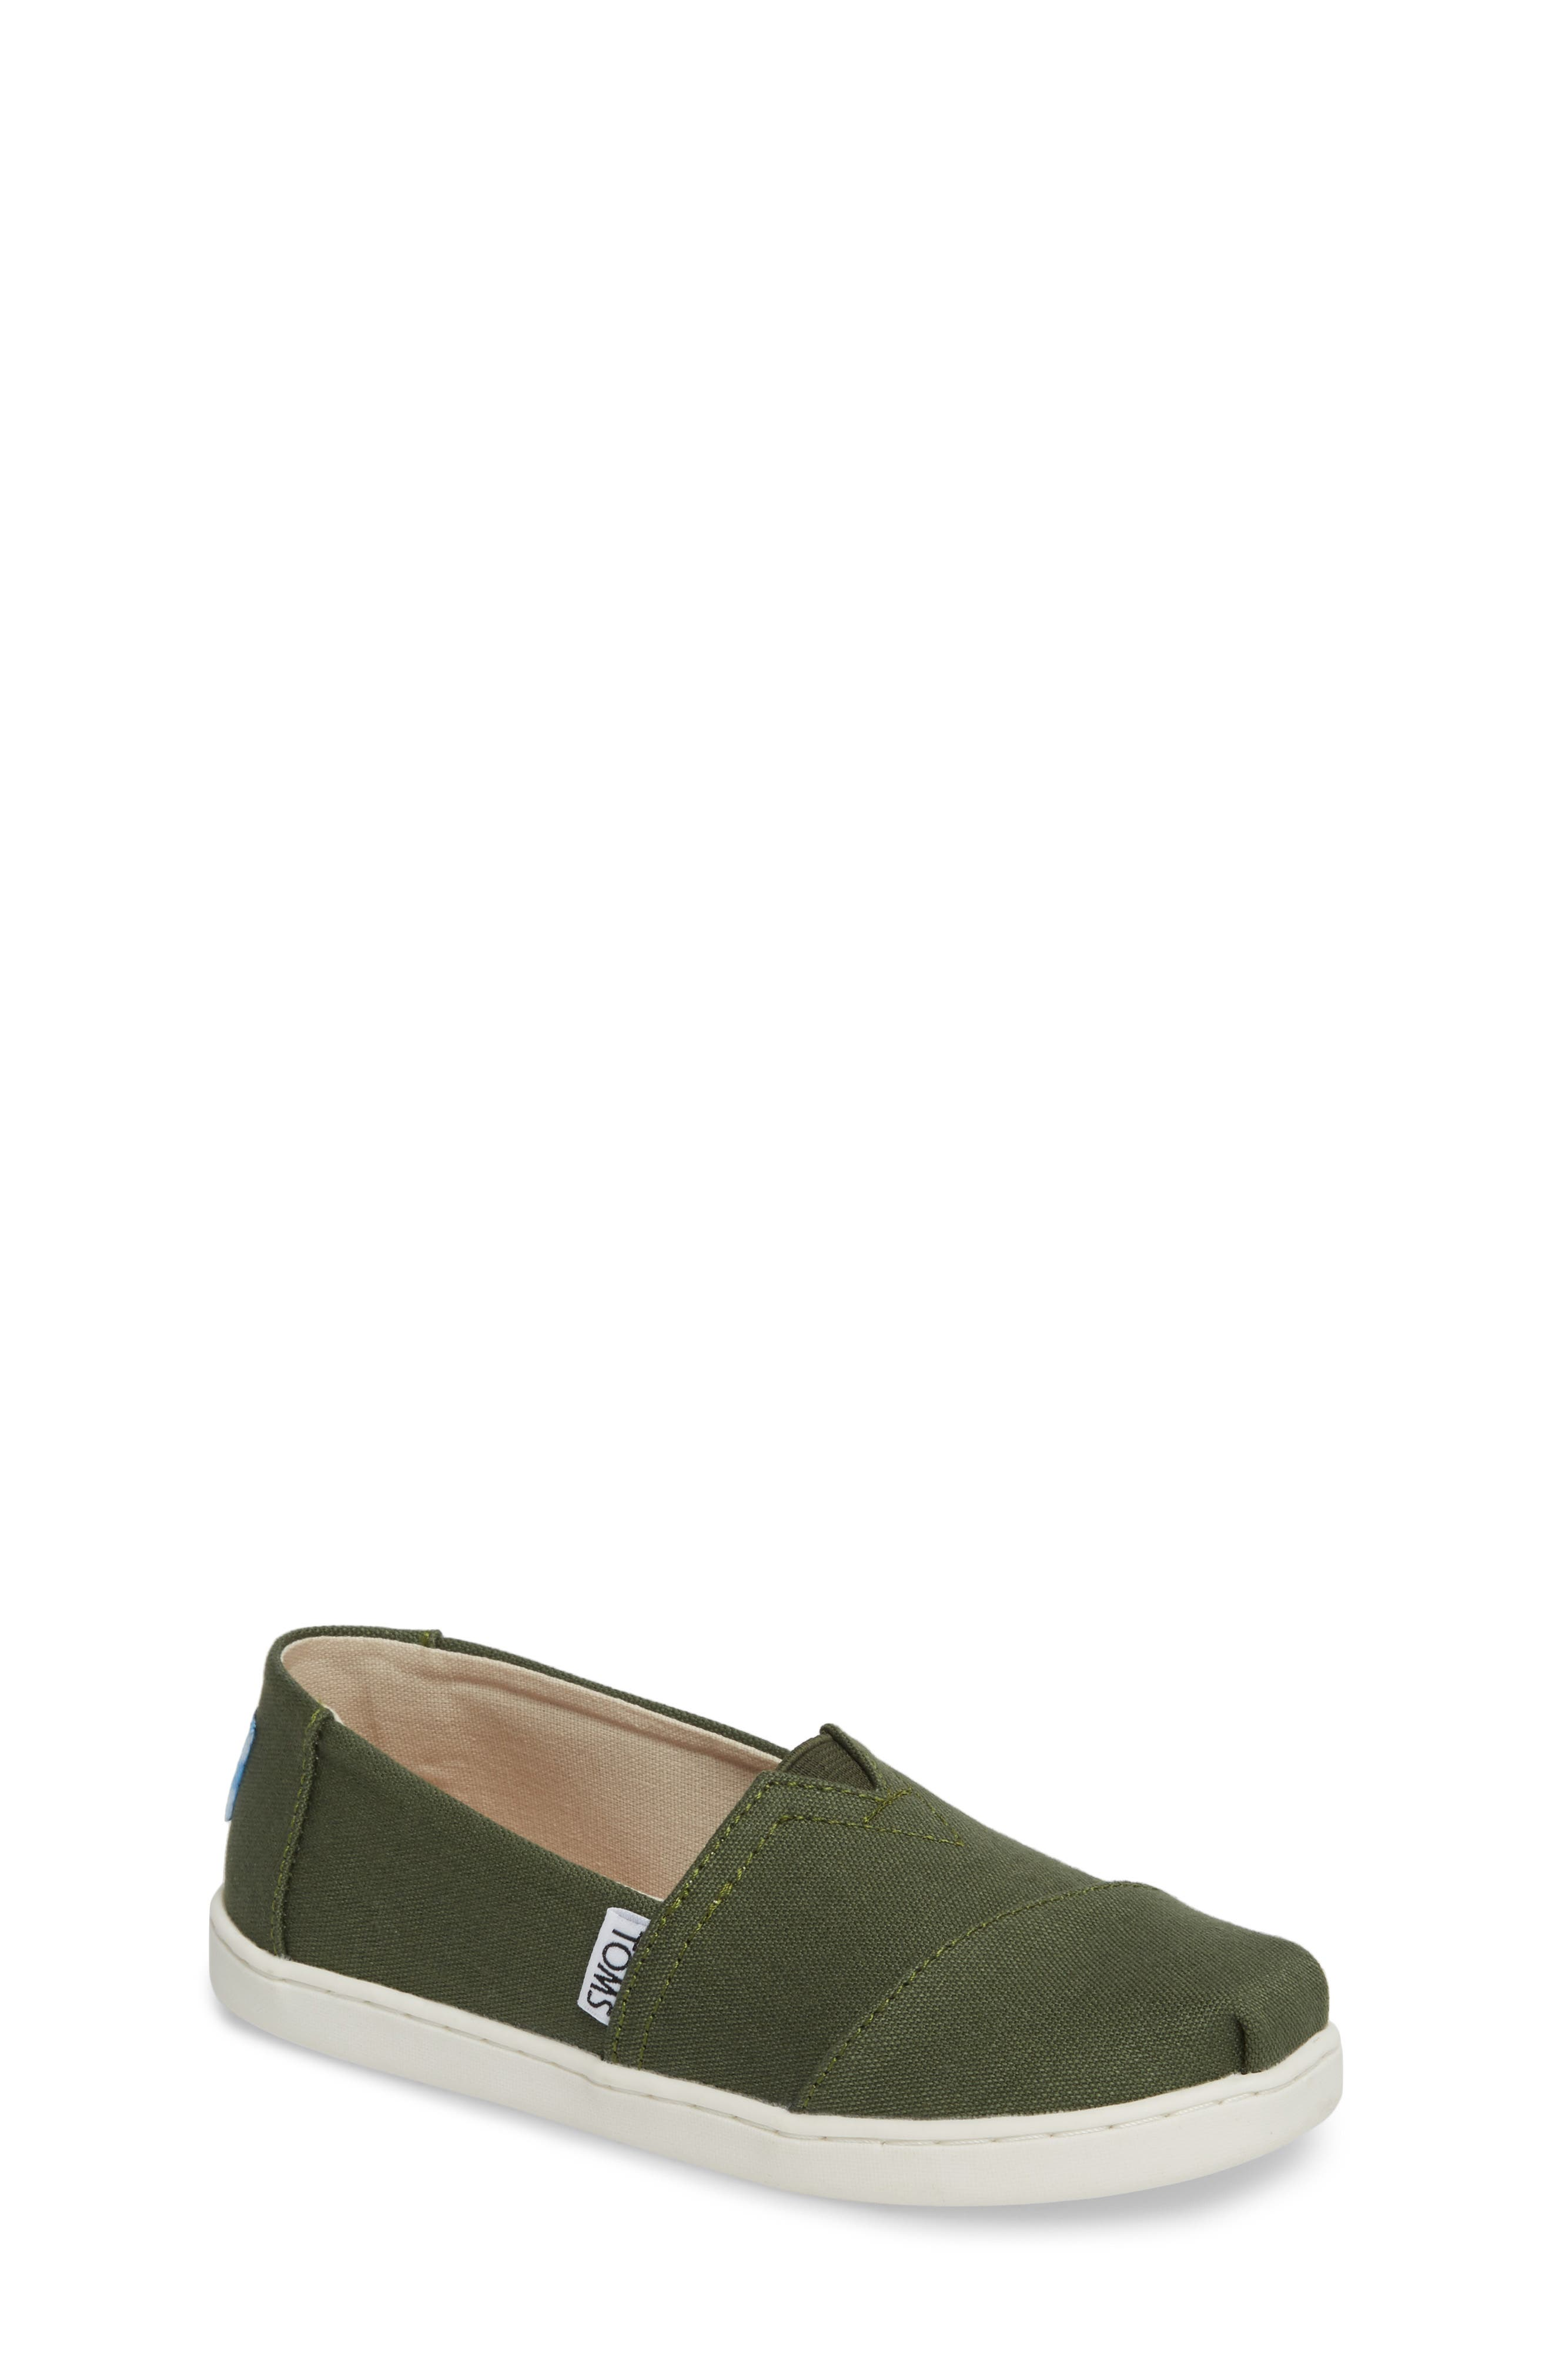 Heritage Canvas Slip-On,                             Main thumbnail 1, color,                             310